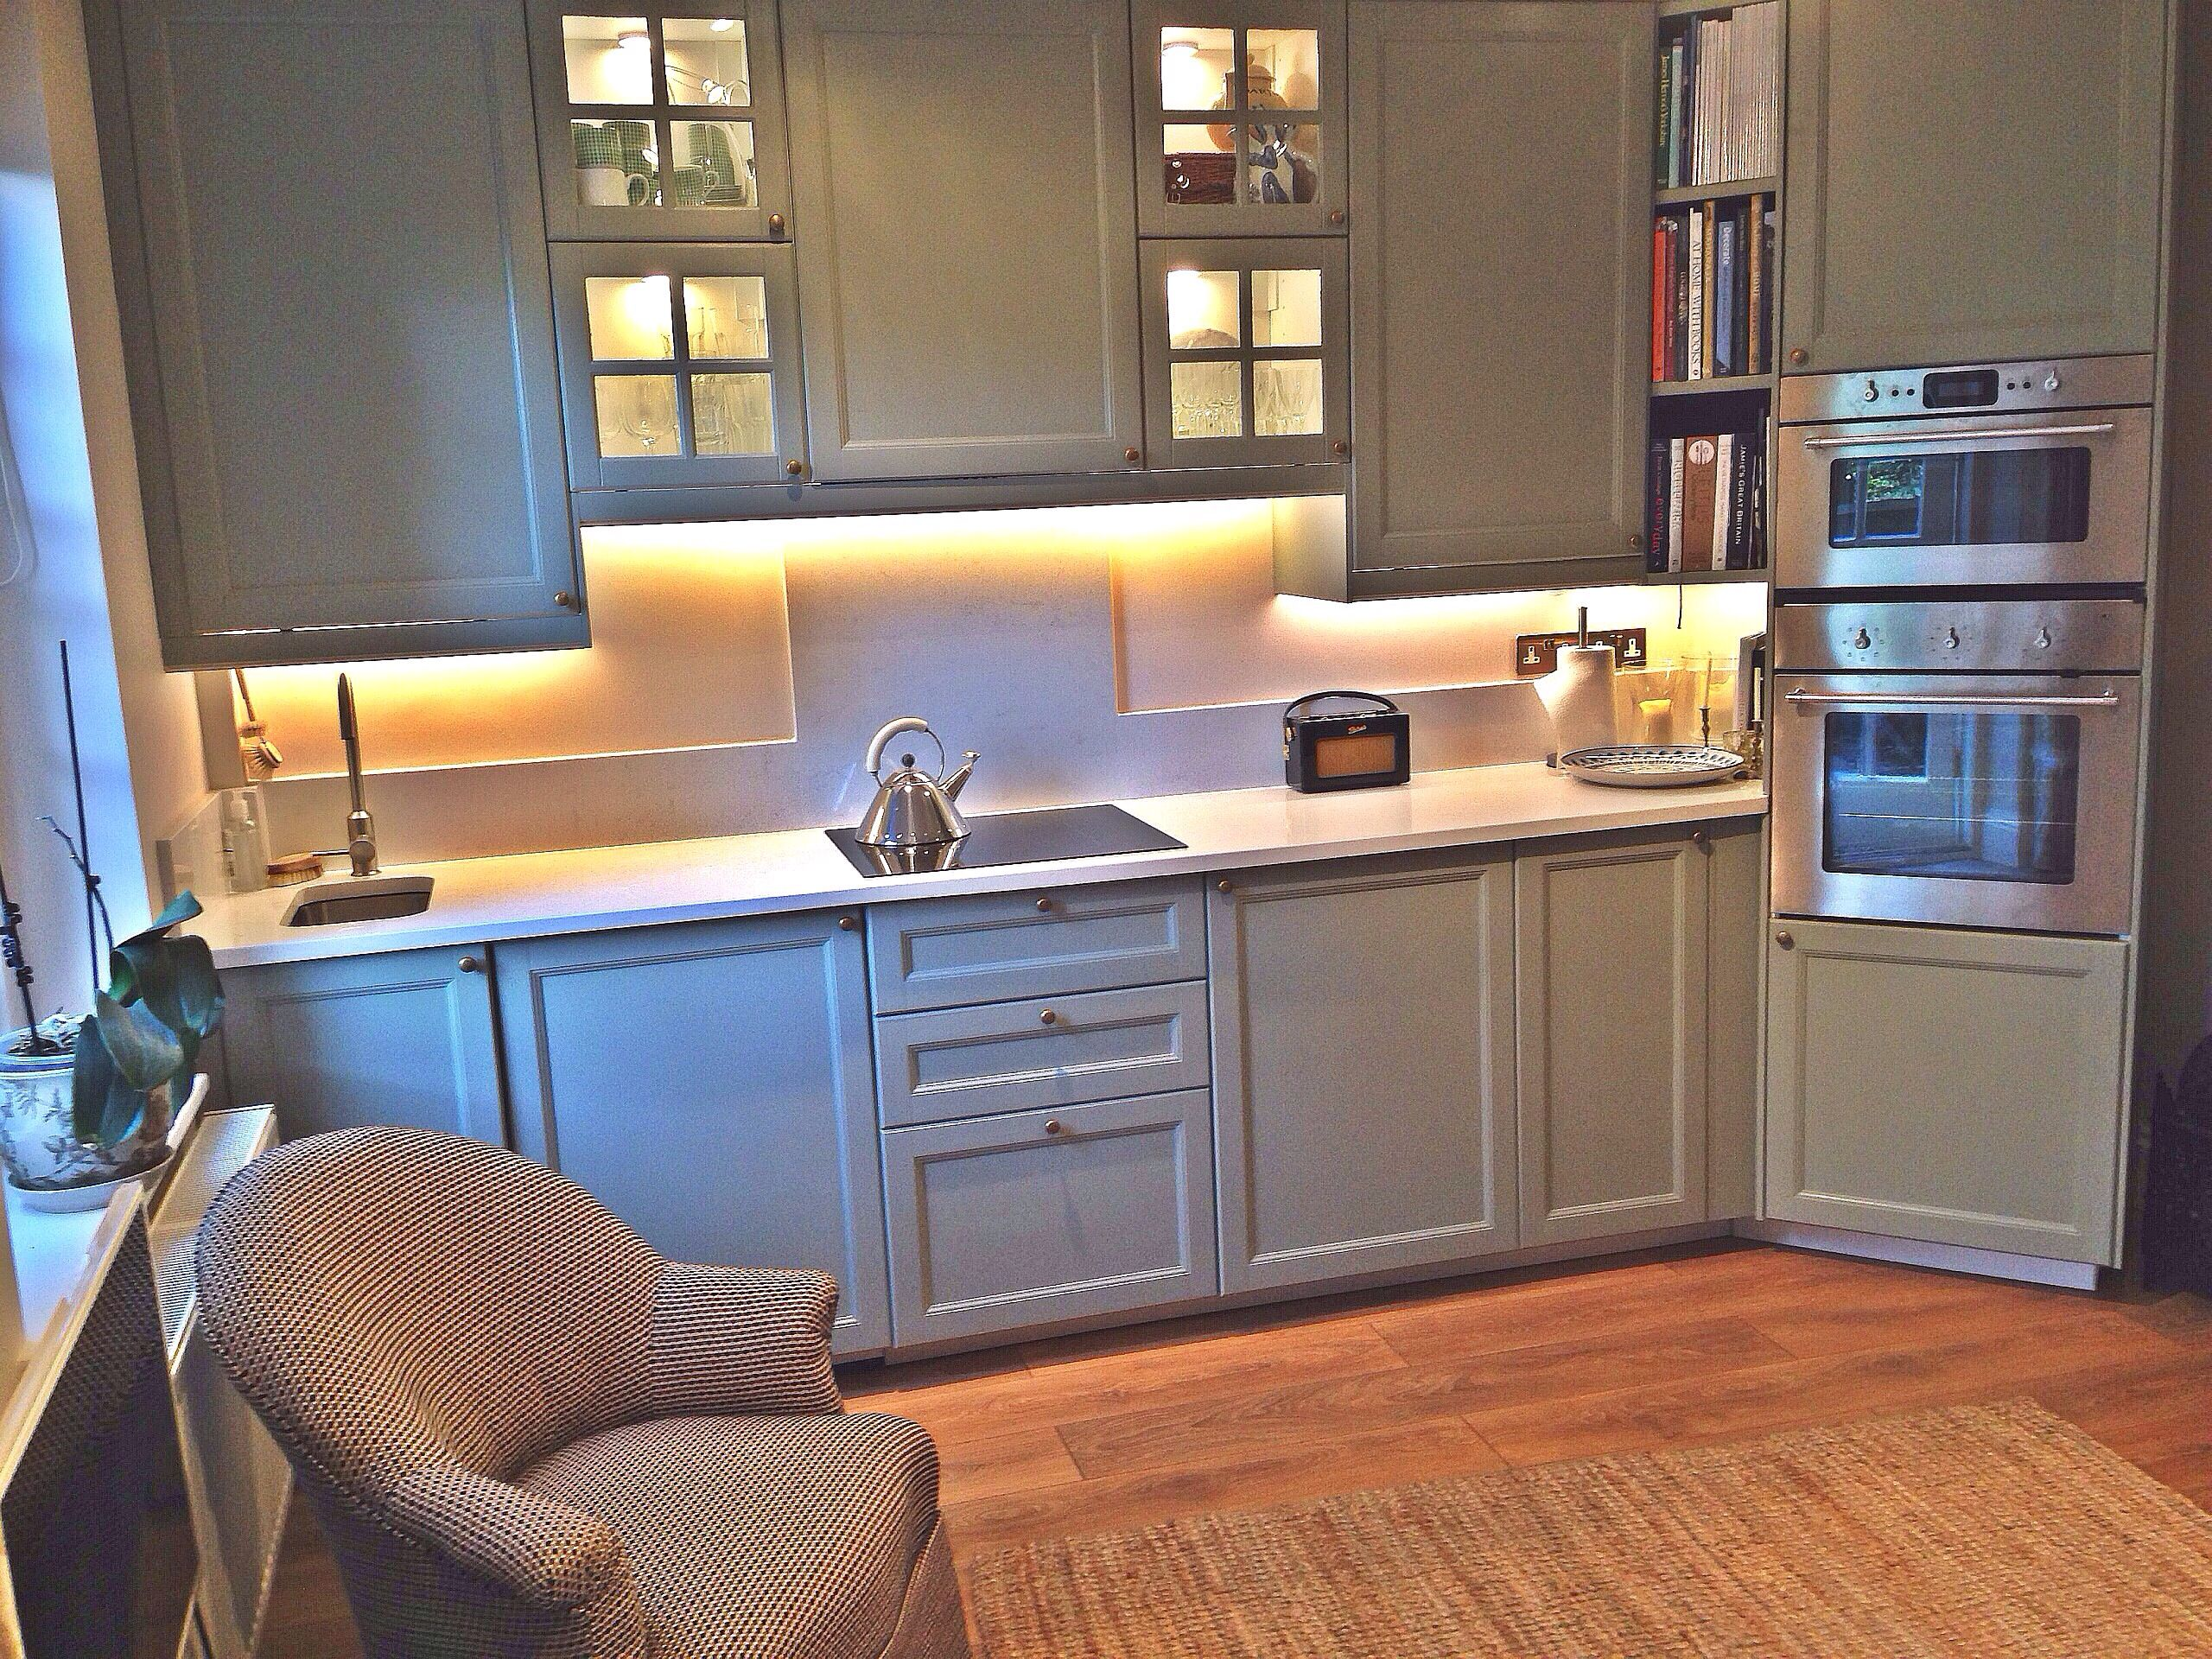 Best Ikea Kitchen Painted In Farrow Ball Pigeon With Quartz 400 x 300